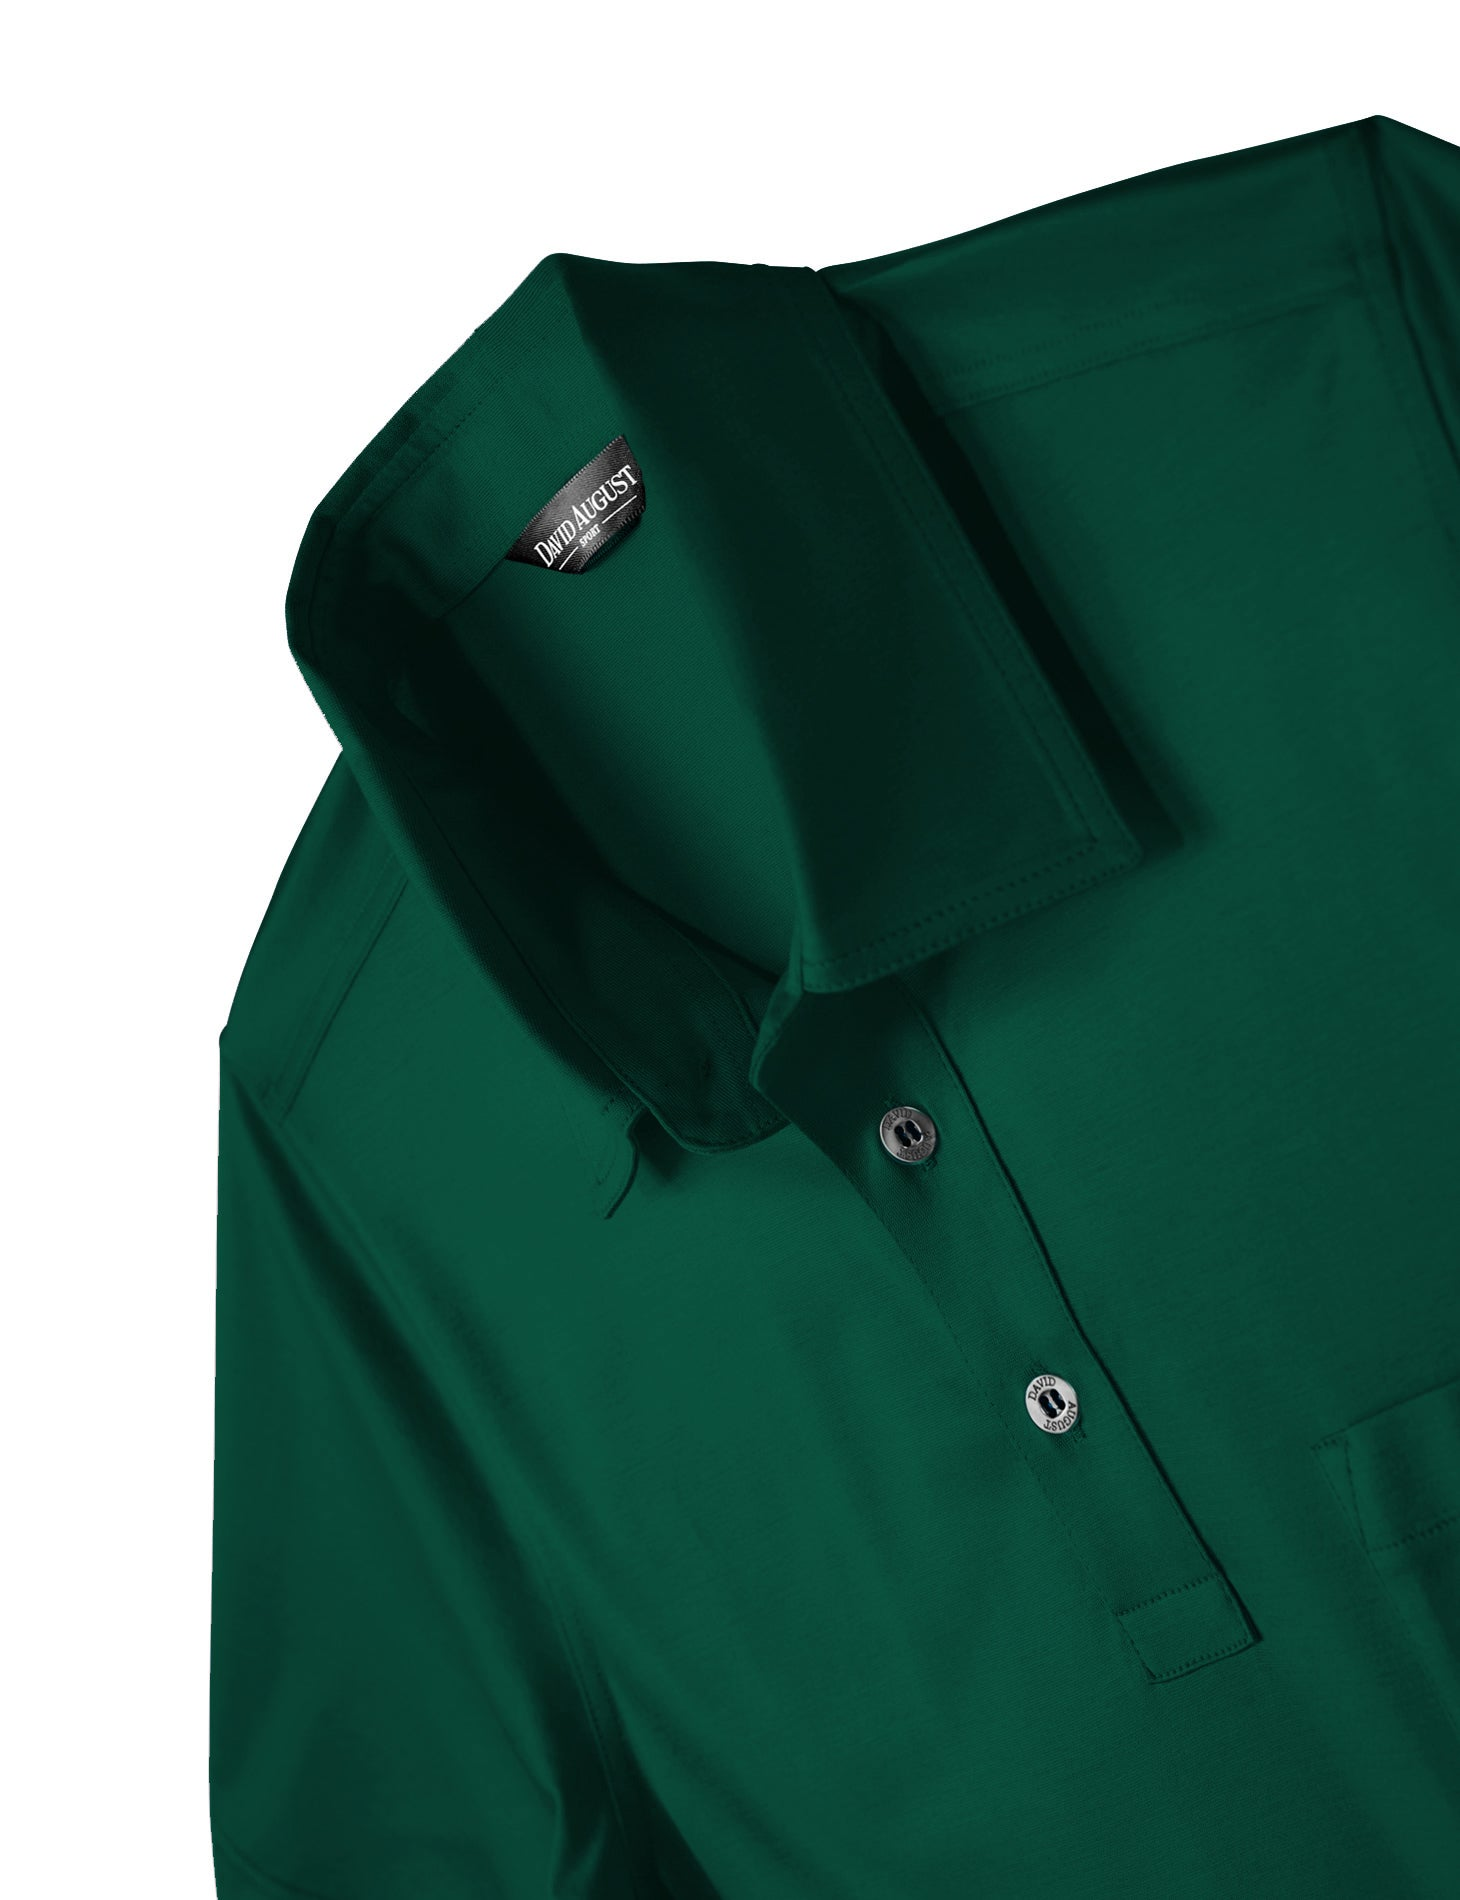 David August Luxury Mercerized Cotton Polo in Arcadia Green